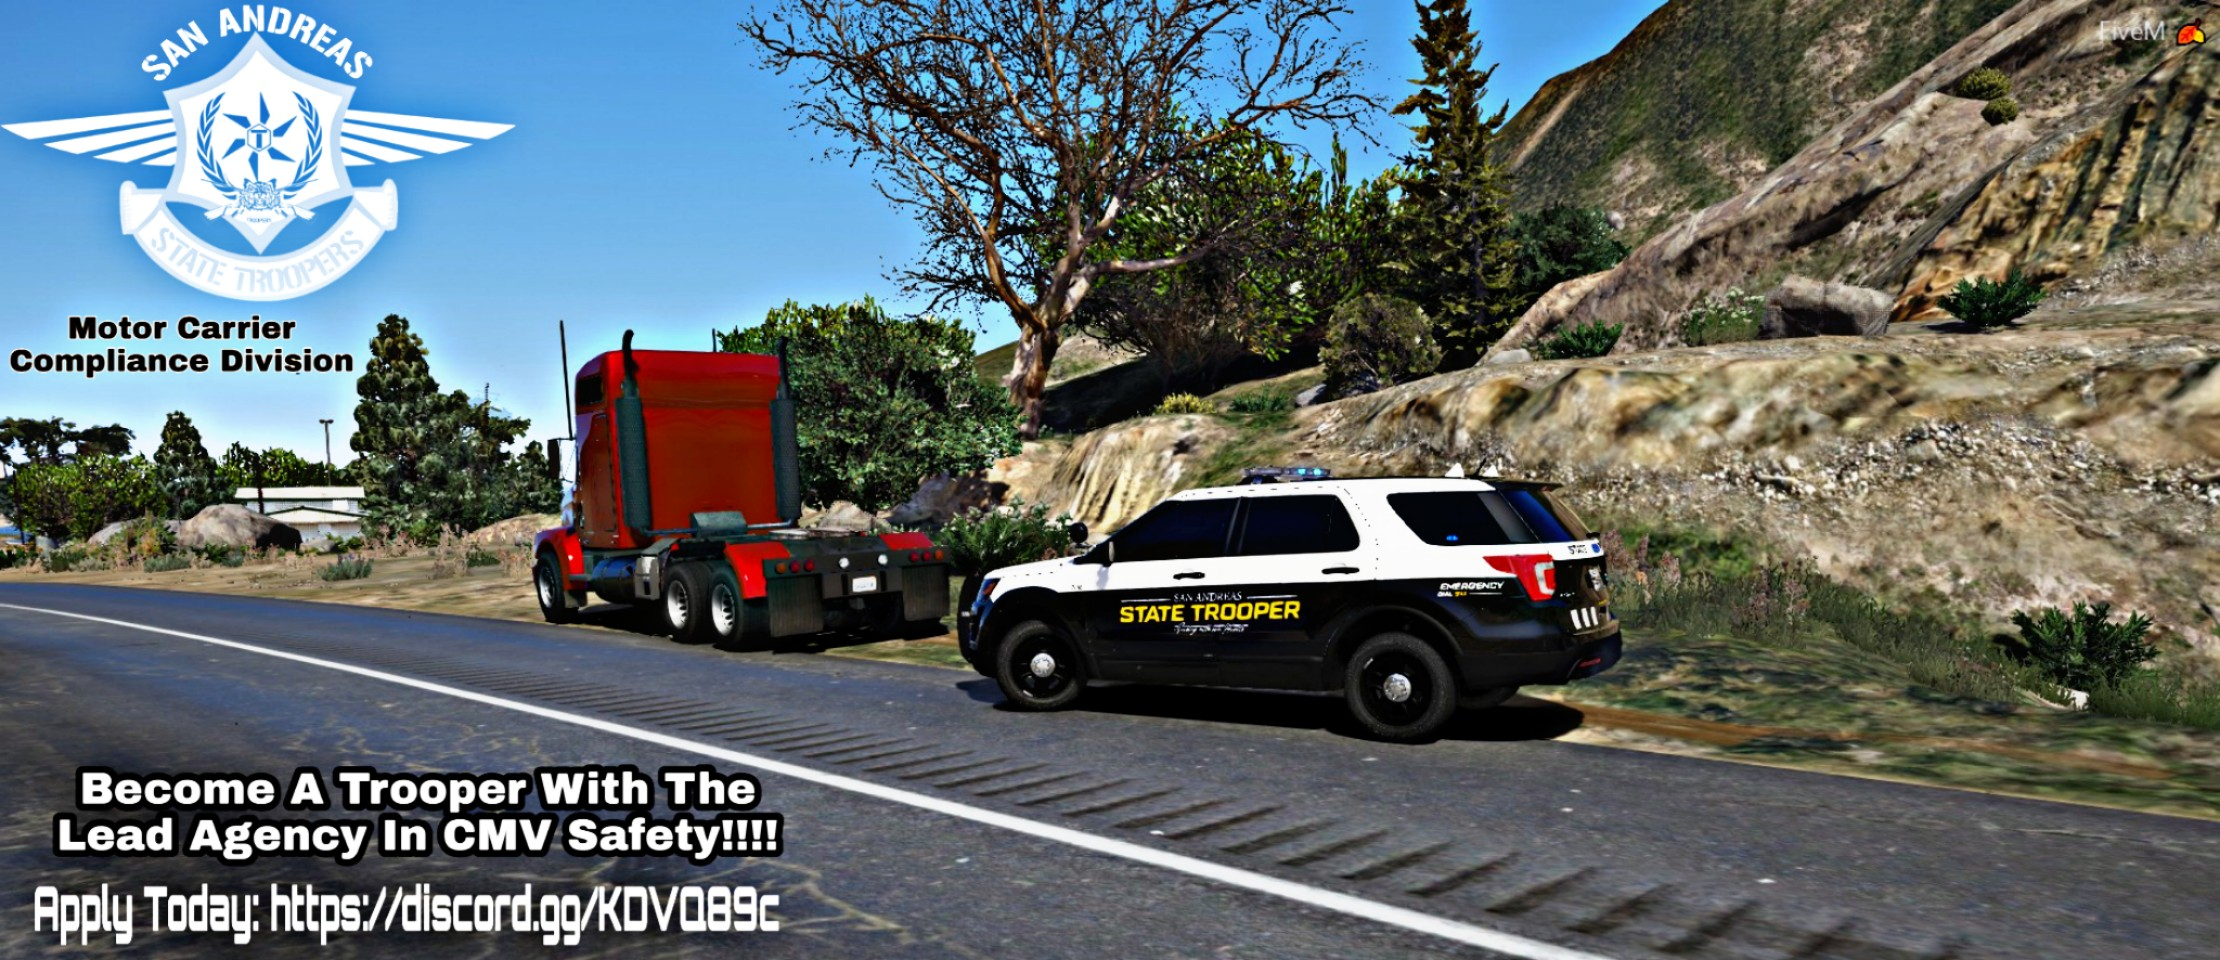 USING LSPDFROnline Script with Court System] First Response RP   NON